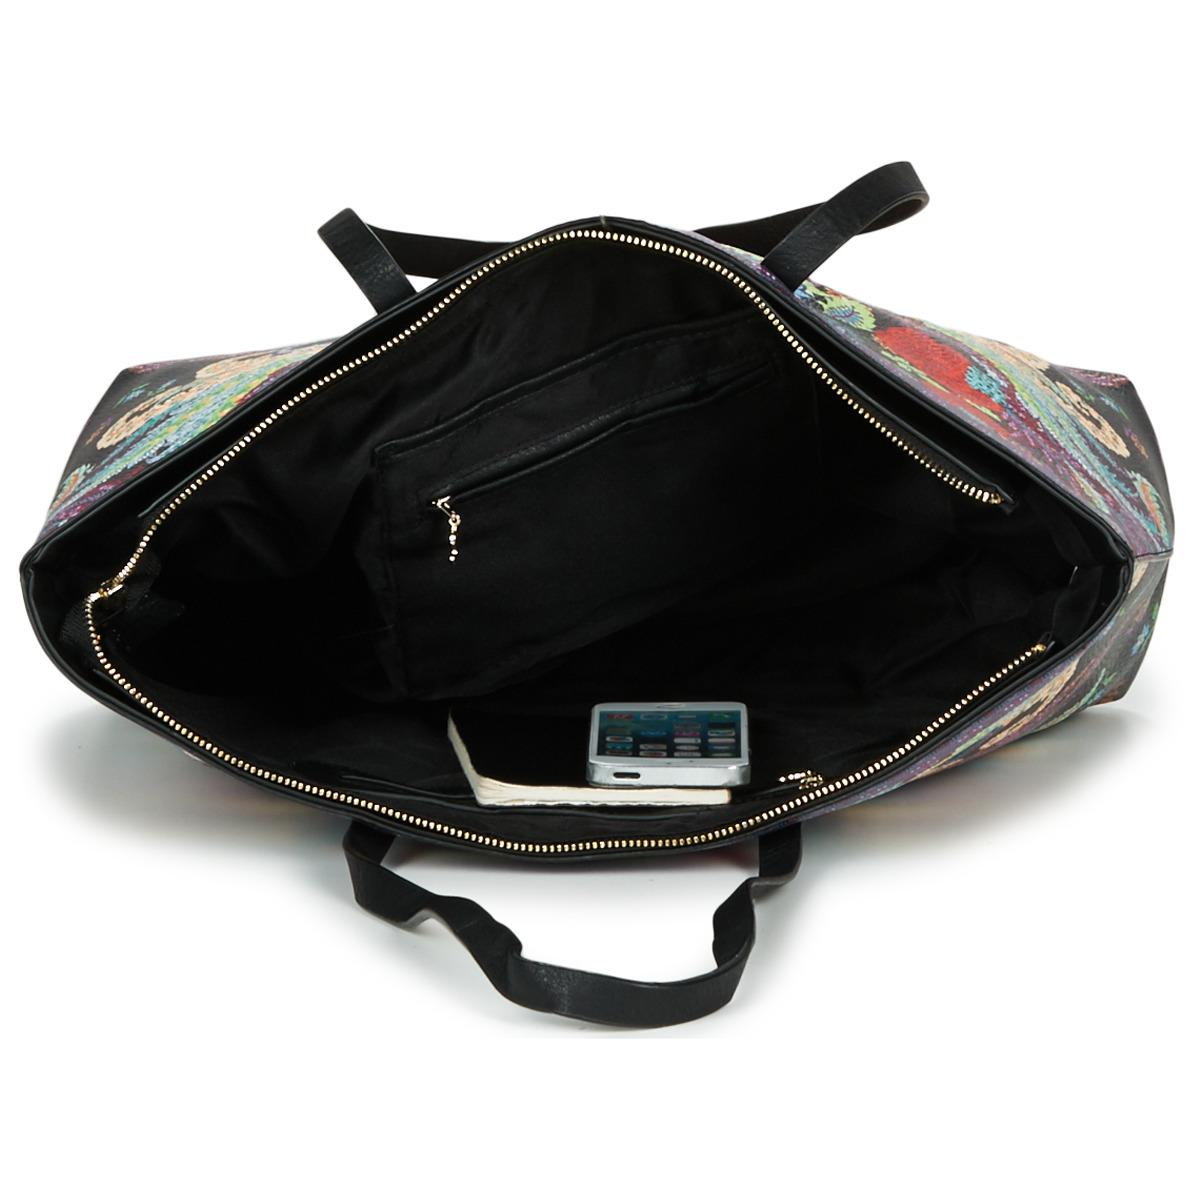 Desigual - Multicolor Feather Redmond Women s Shopper Bag In Multicolour  for Men - Lyst. View fullscreen 34a11c32be2dc